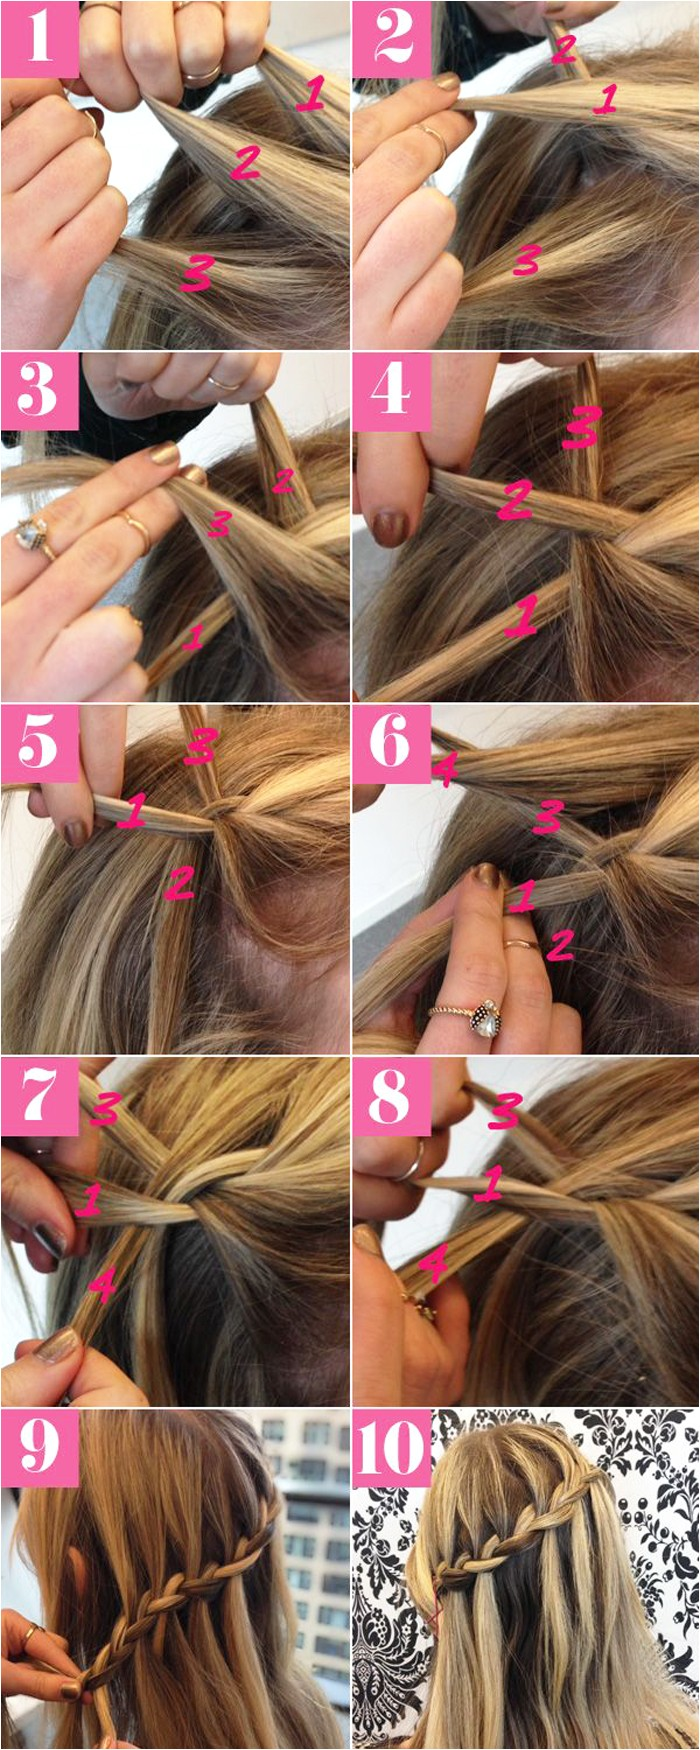 easy step by step hairstyle tutorials for medium length hair